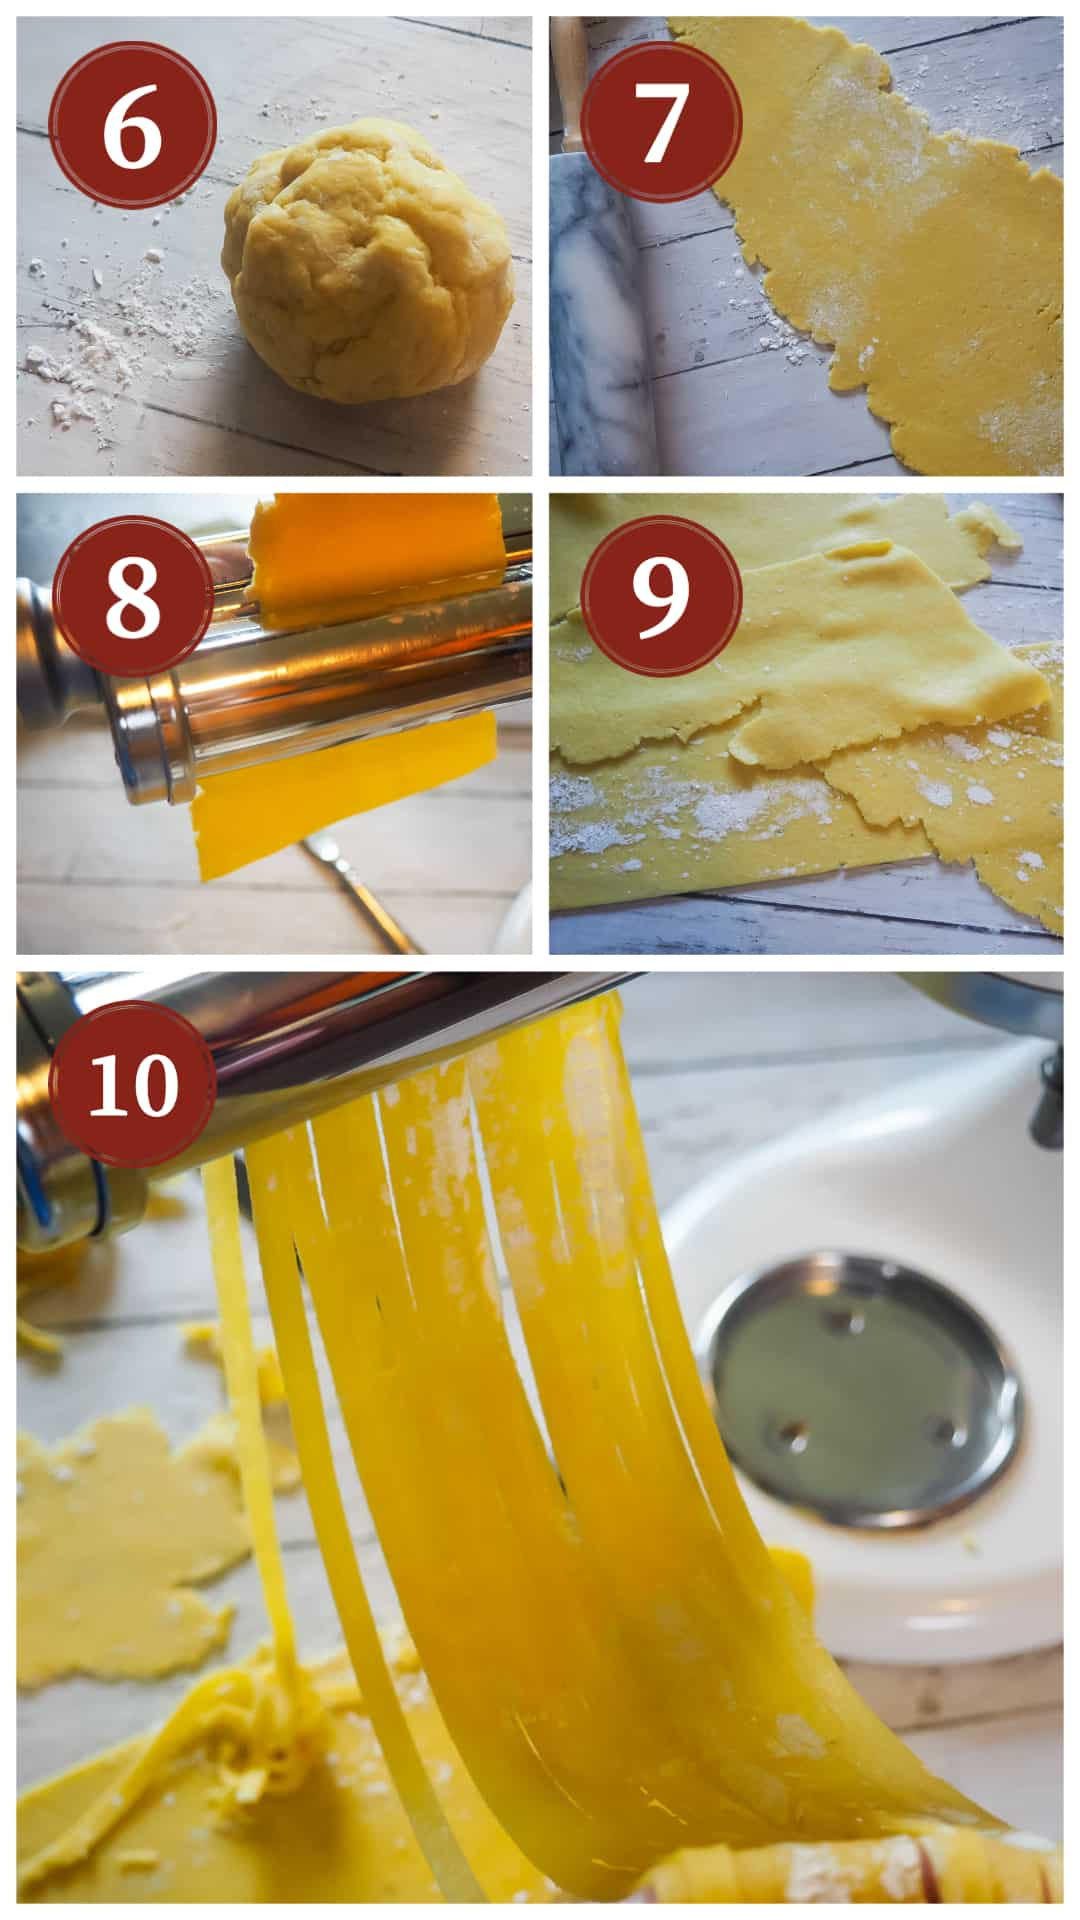 A collage of images showing the process of making homemade paleo pasta, steps 6 - 10.